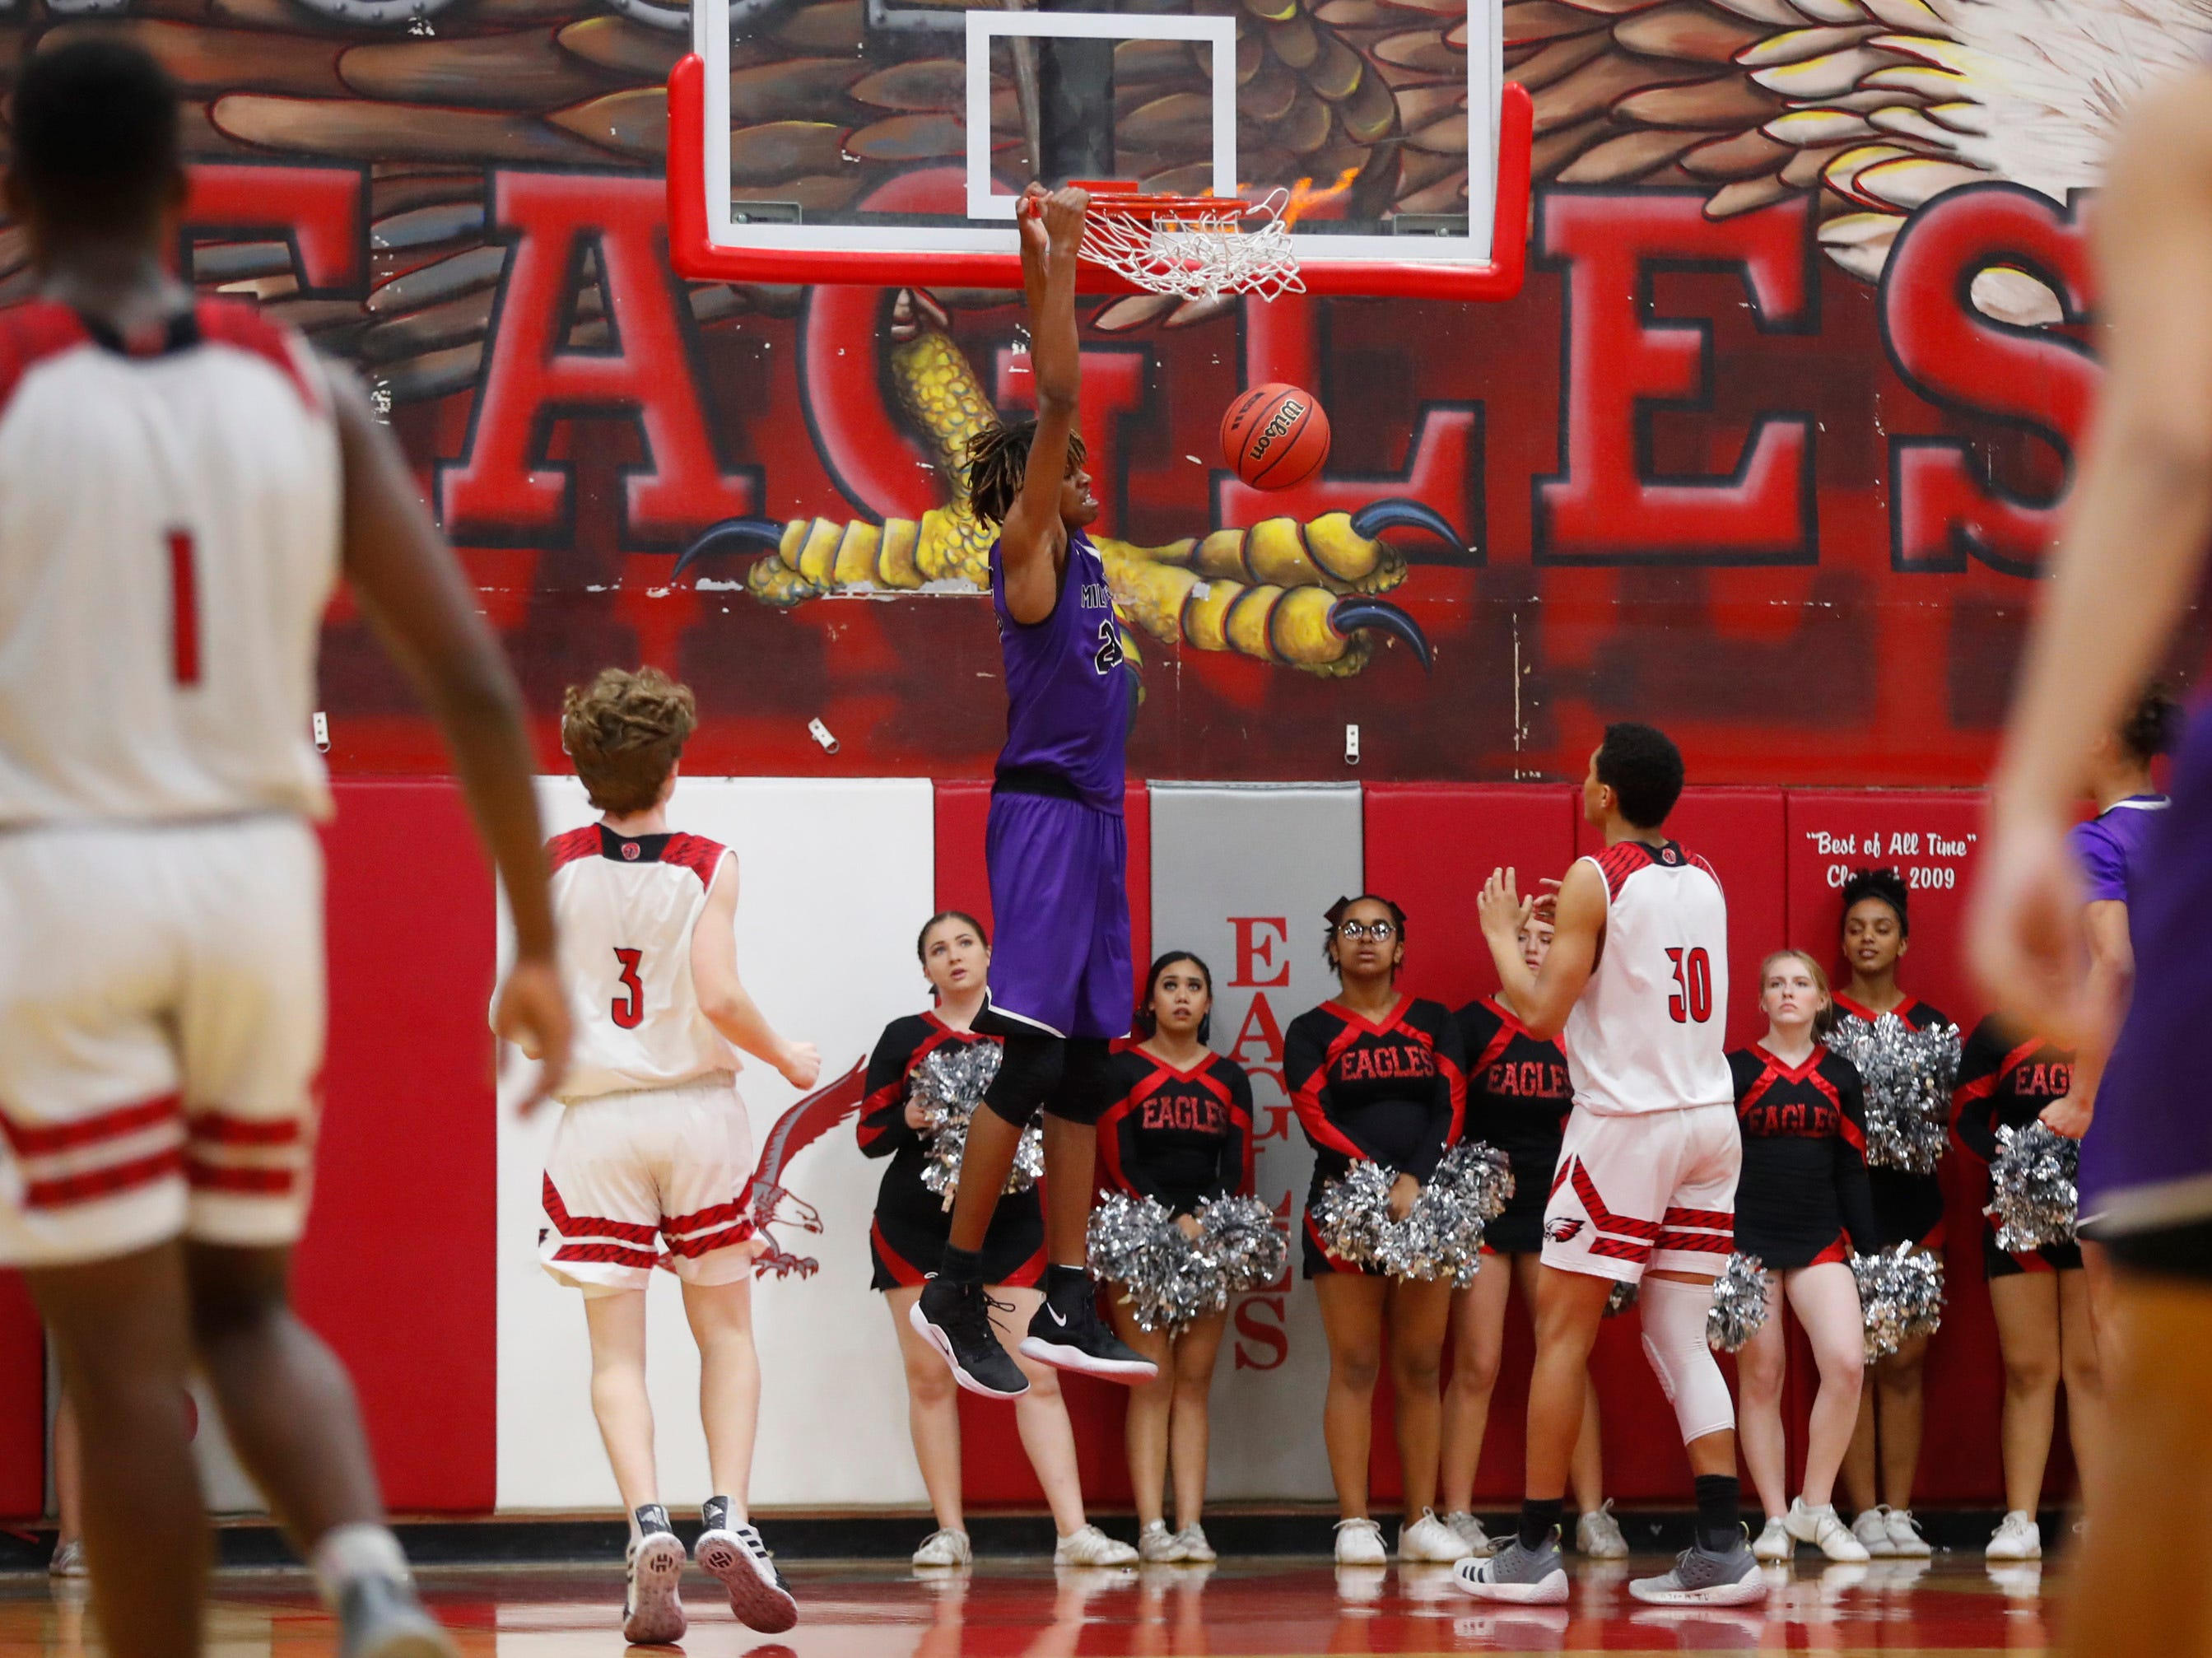 Millennium's DaRon Holmes (23) dunks against Ironwood during the first half of the 5A state quarterfinal game at Ironwood High School in Glendale, Ariz. on February 15, 2019.